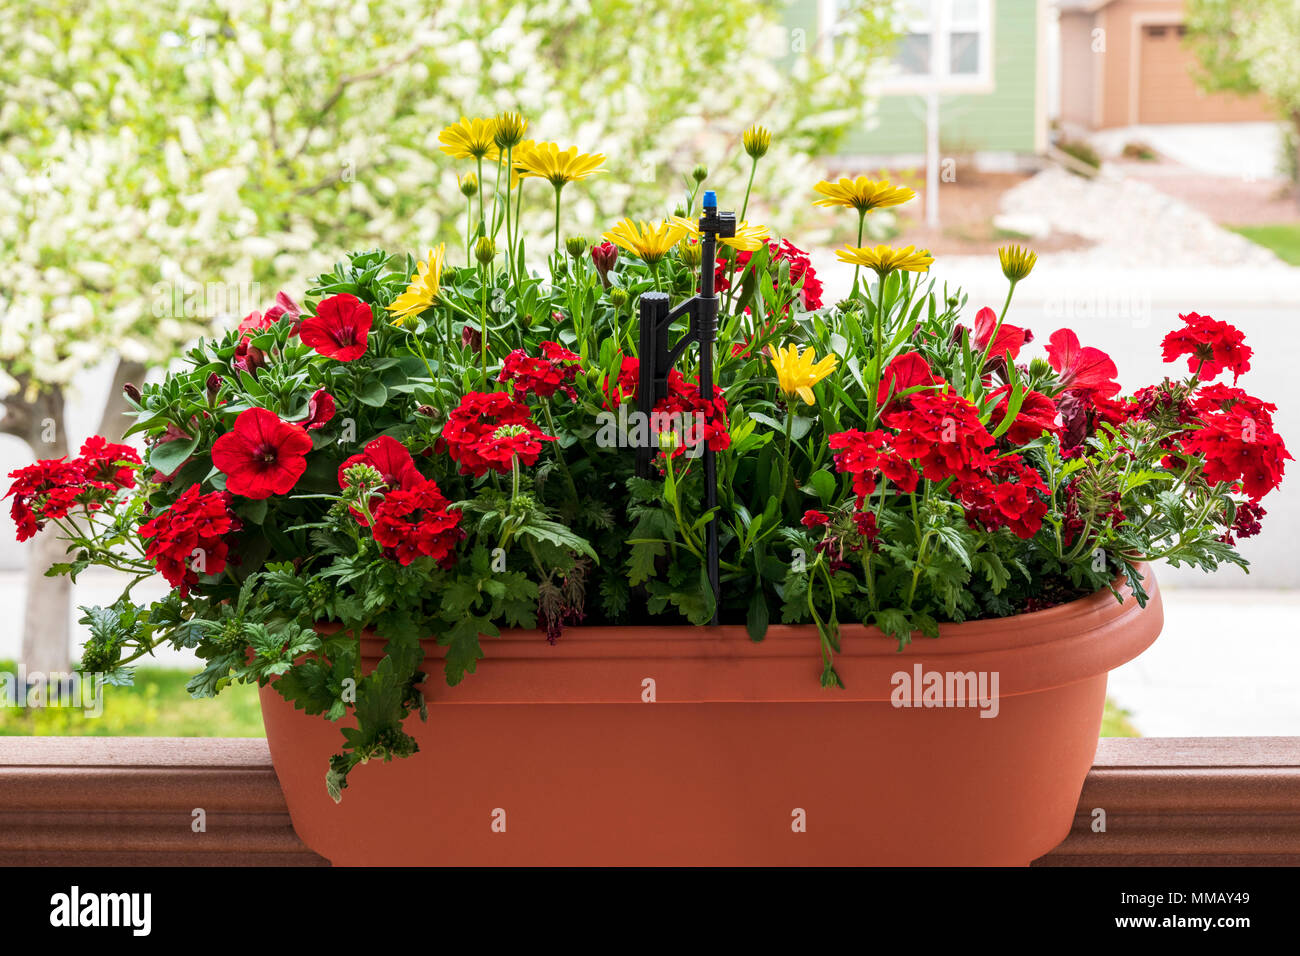 Red geraniums; Red Petunia; Empress Flair Red Verbena; yellow Osteospermum & Cape Daisy's in planter - Stock Image